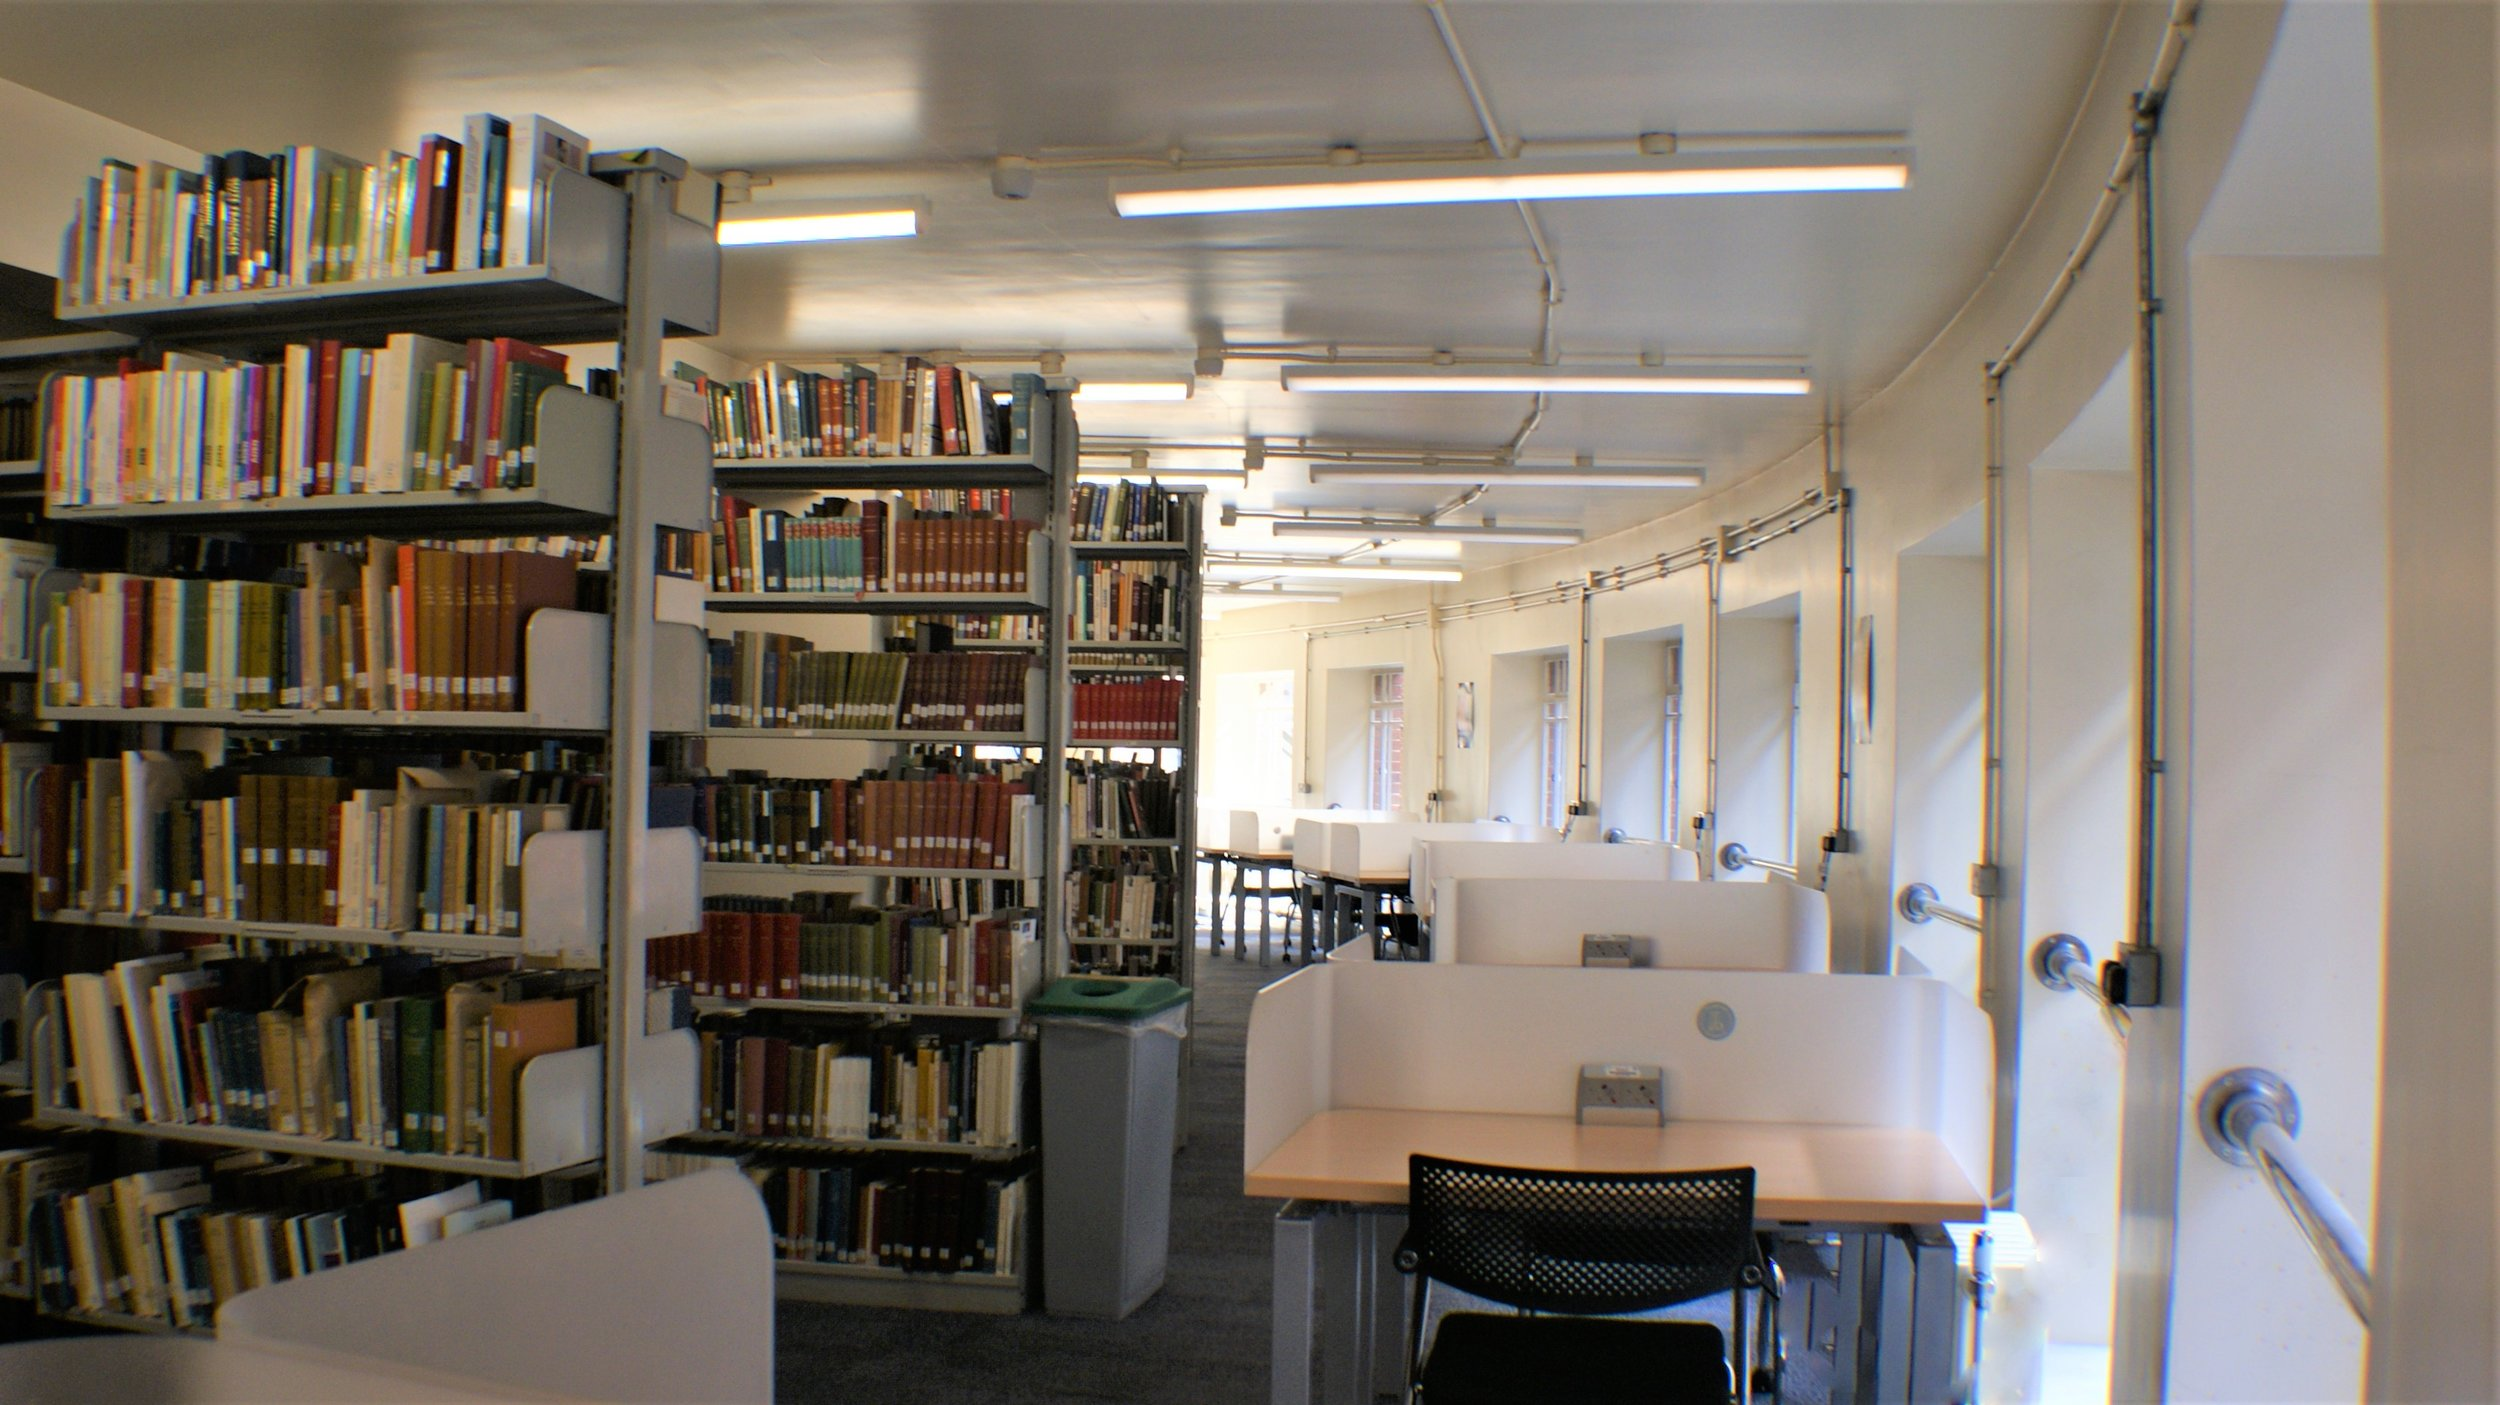 LED and New Automatic Lighting Controls to Michael Sadler & Brotherton Library